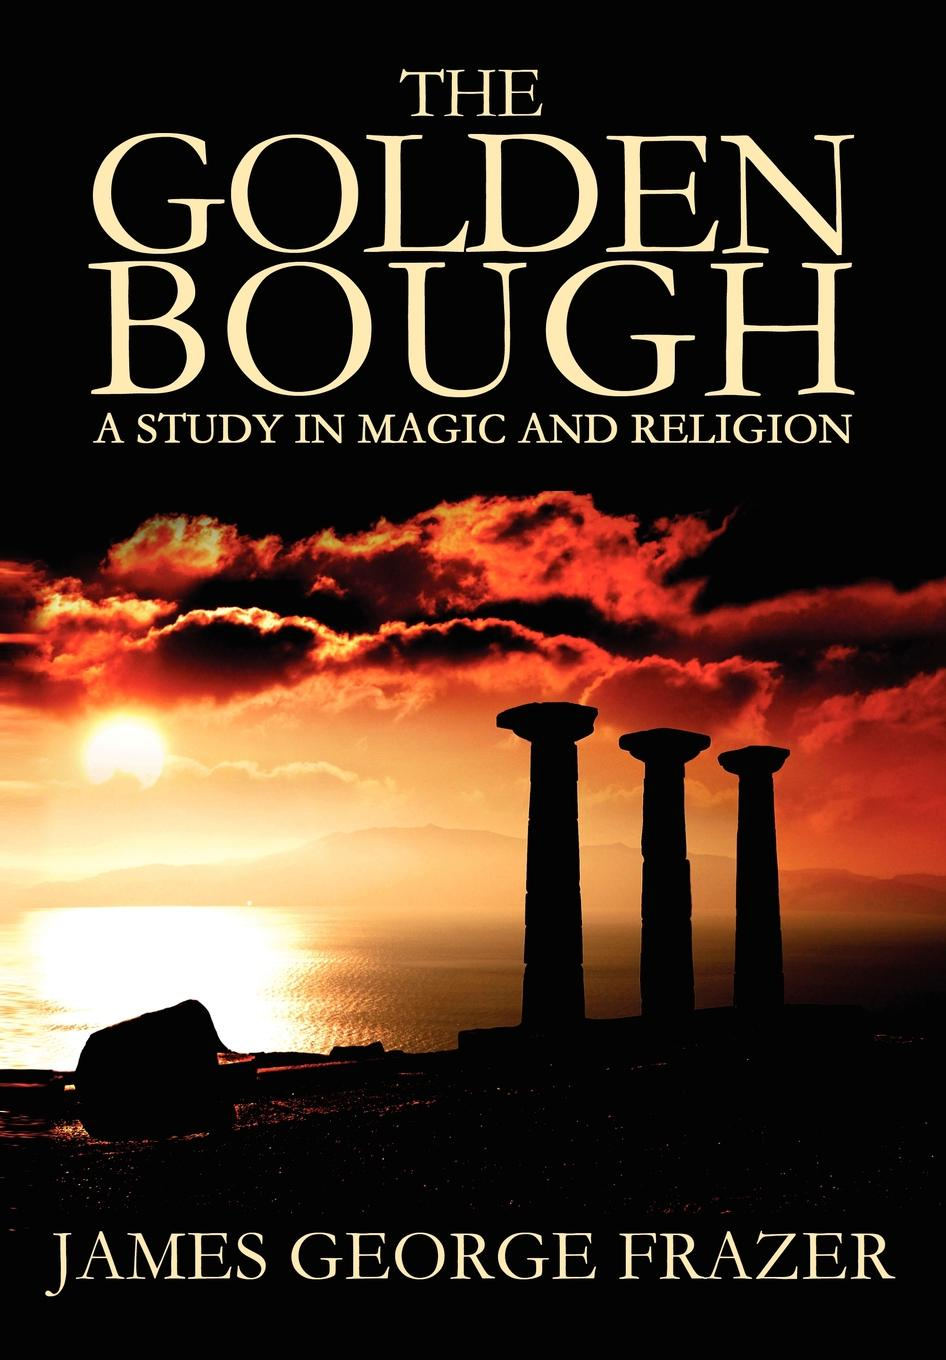 цена на James George Frazer The Golden Bough. A Study of Magic and Religion